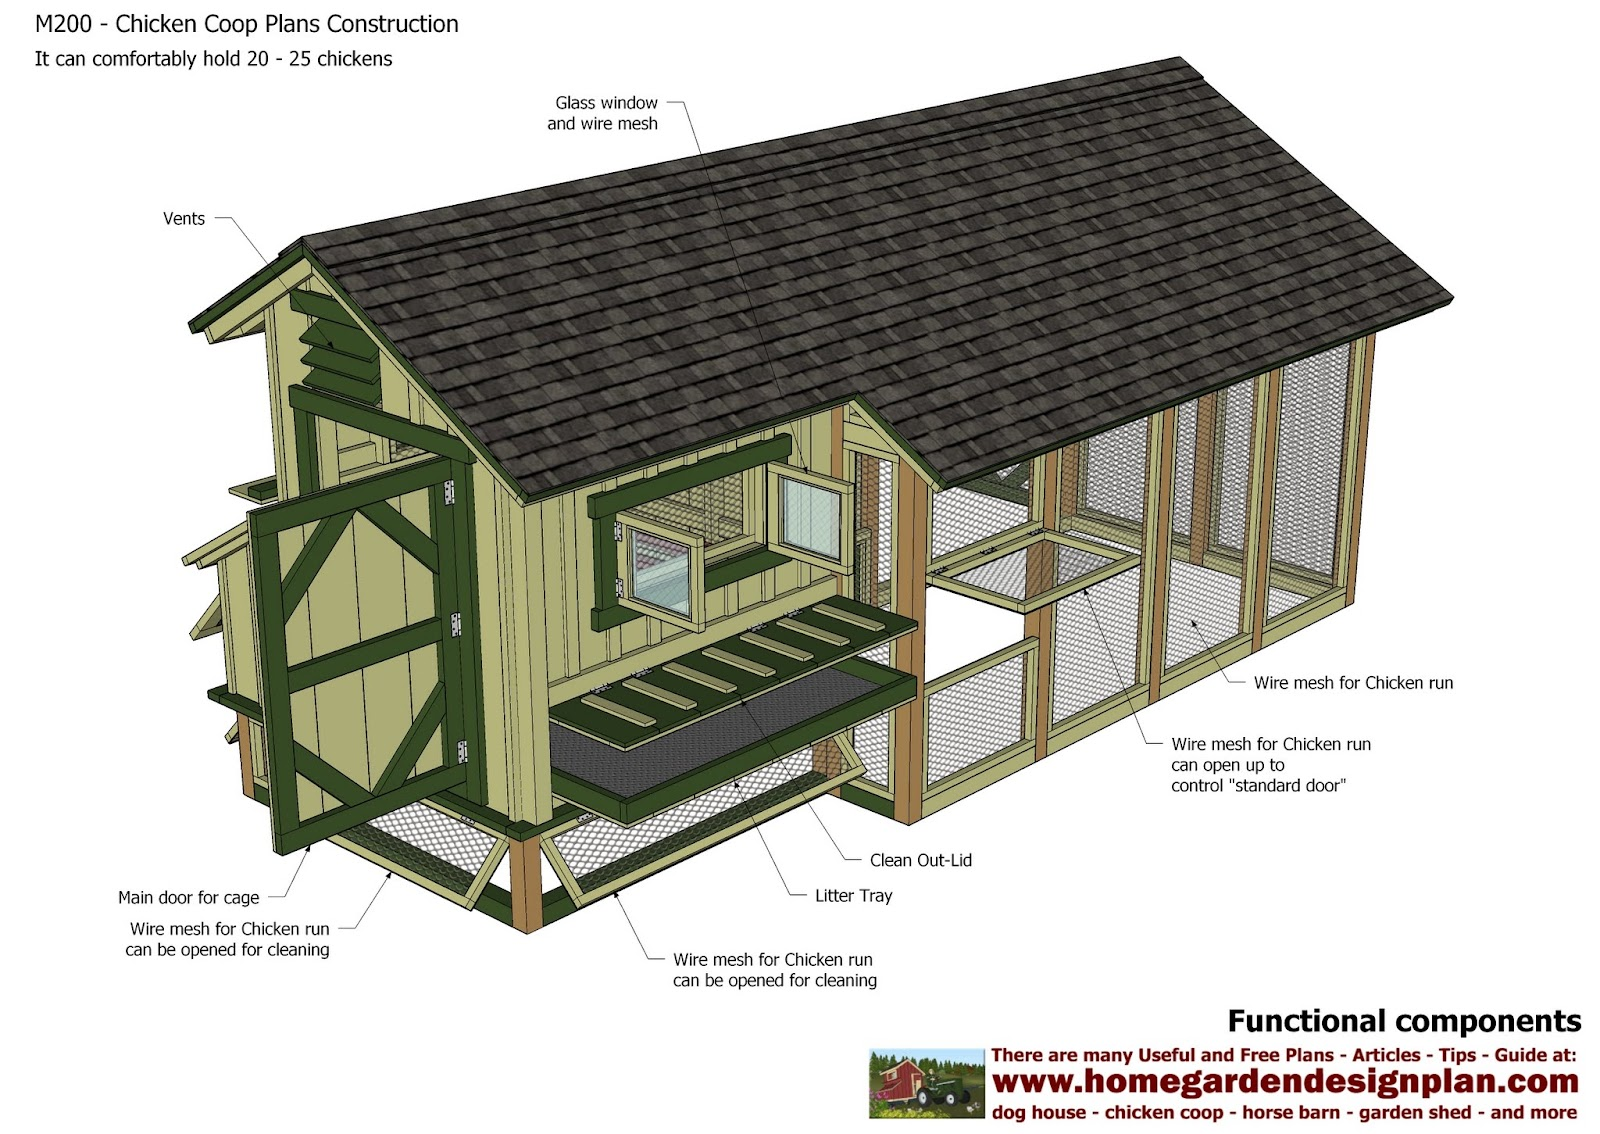 Home garden plans m200 chicken coop plans construction for Plans chicken coop